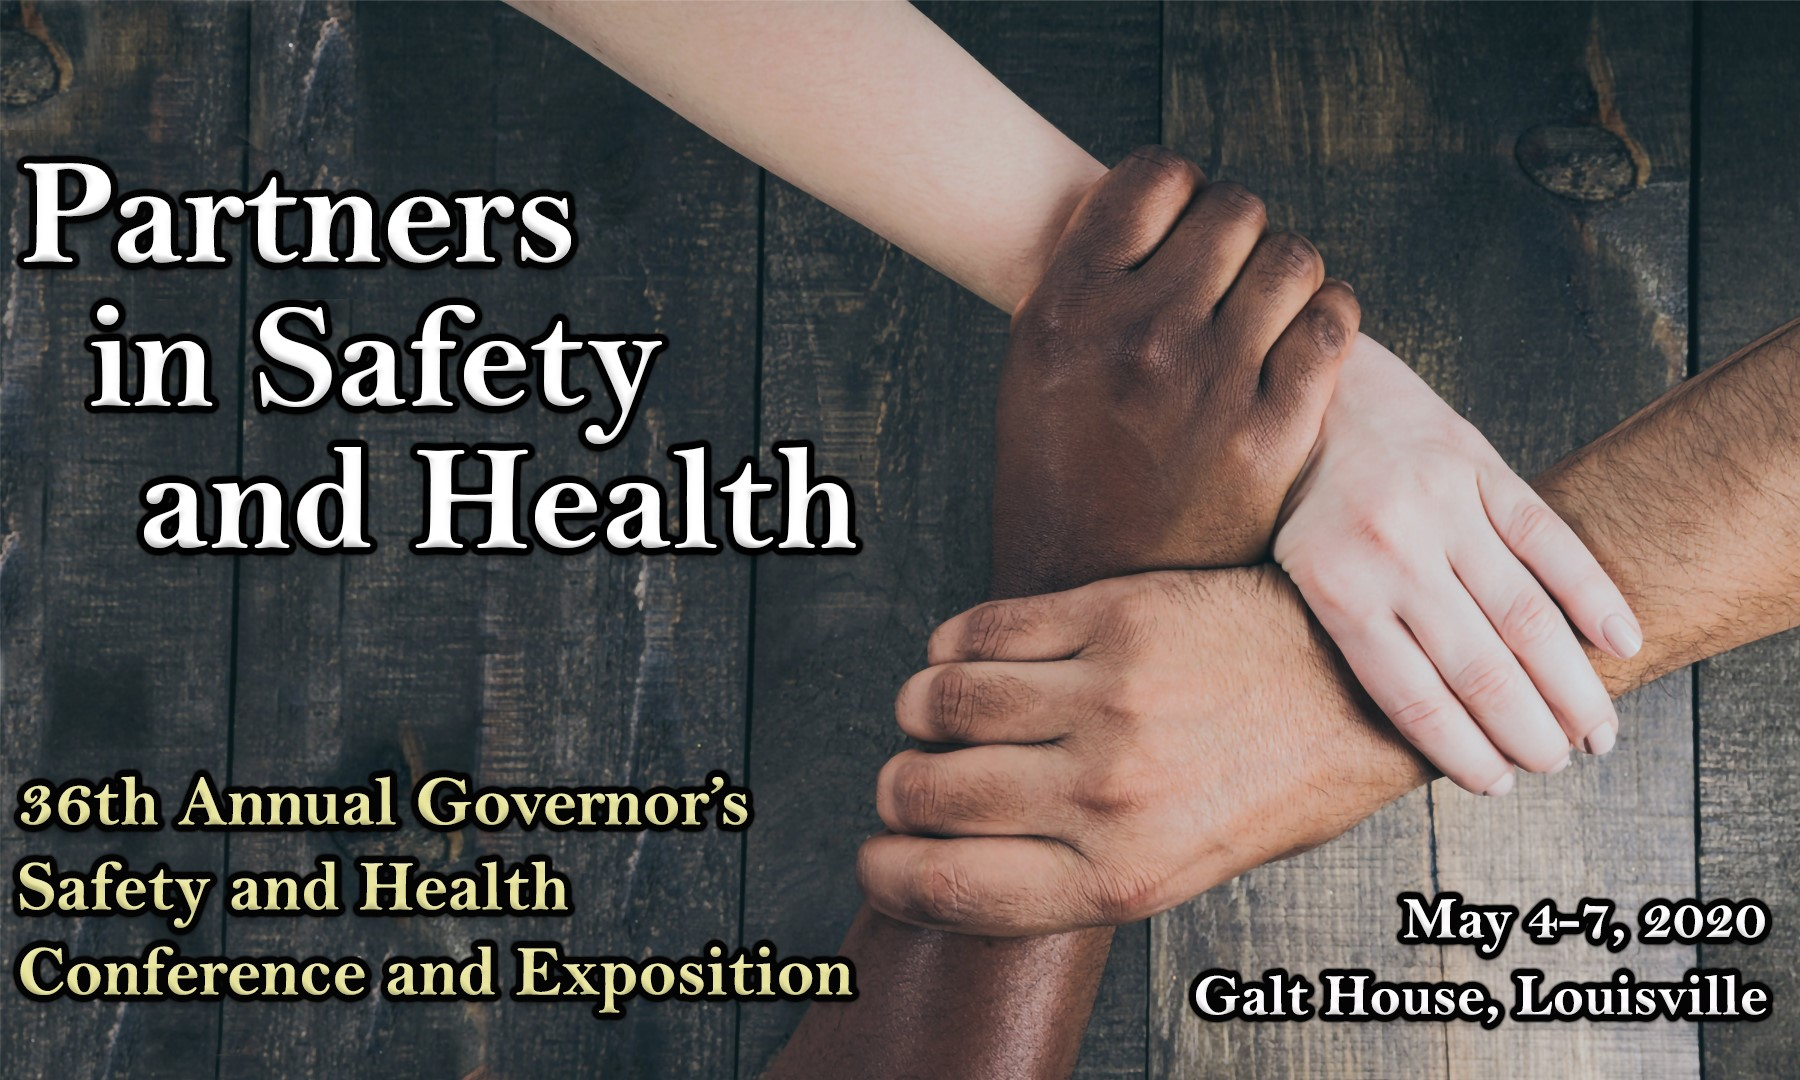 36th Annual Governor's Safety and Health Conference and Exposition